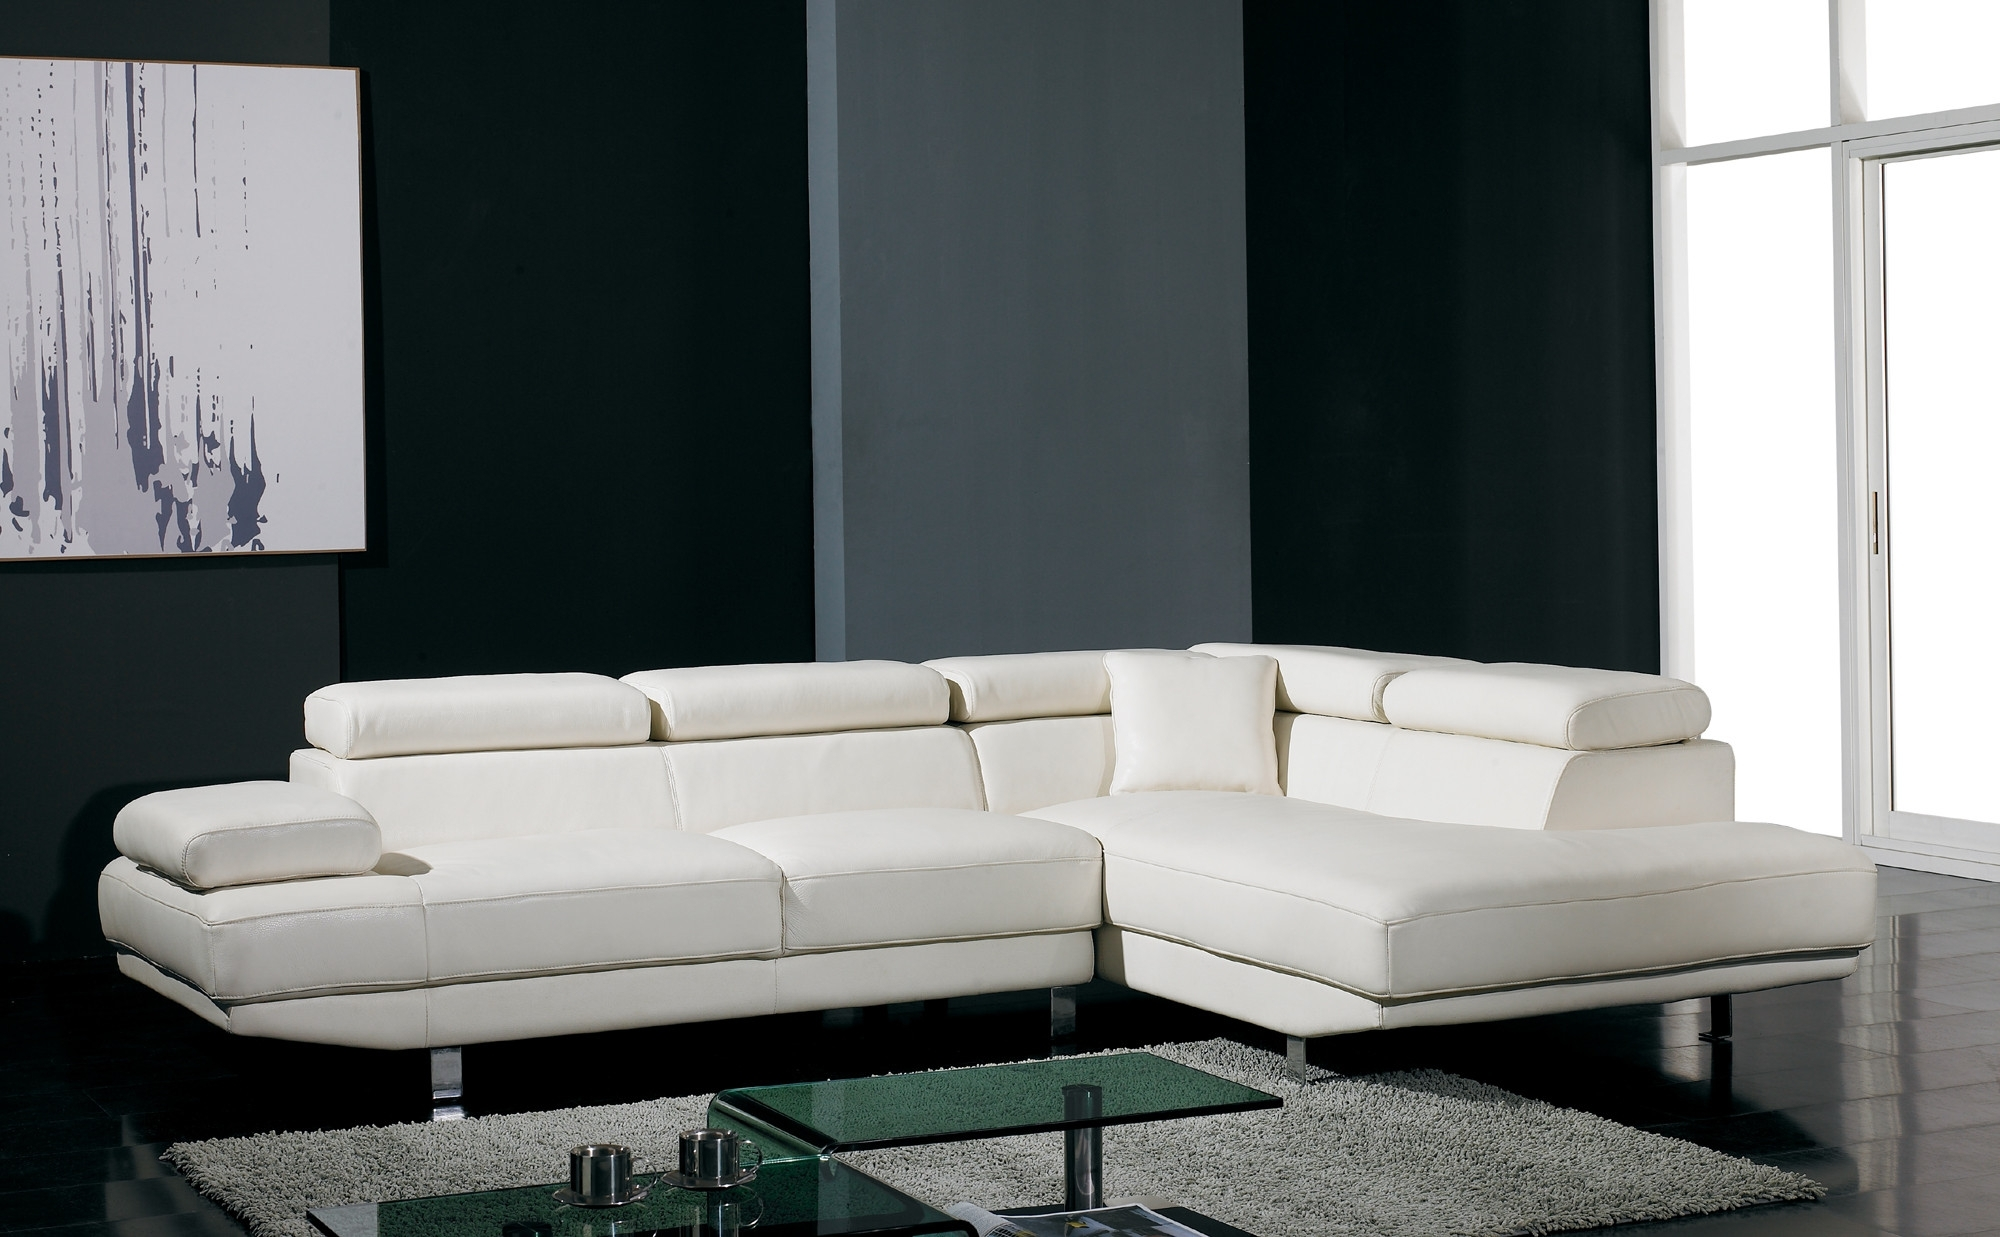 T60 Ultra Modern White Leather Sectional Sofa Intended For Modern Sectional Sofas (Image 10 of 10)